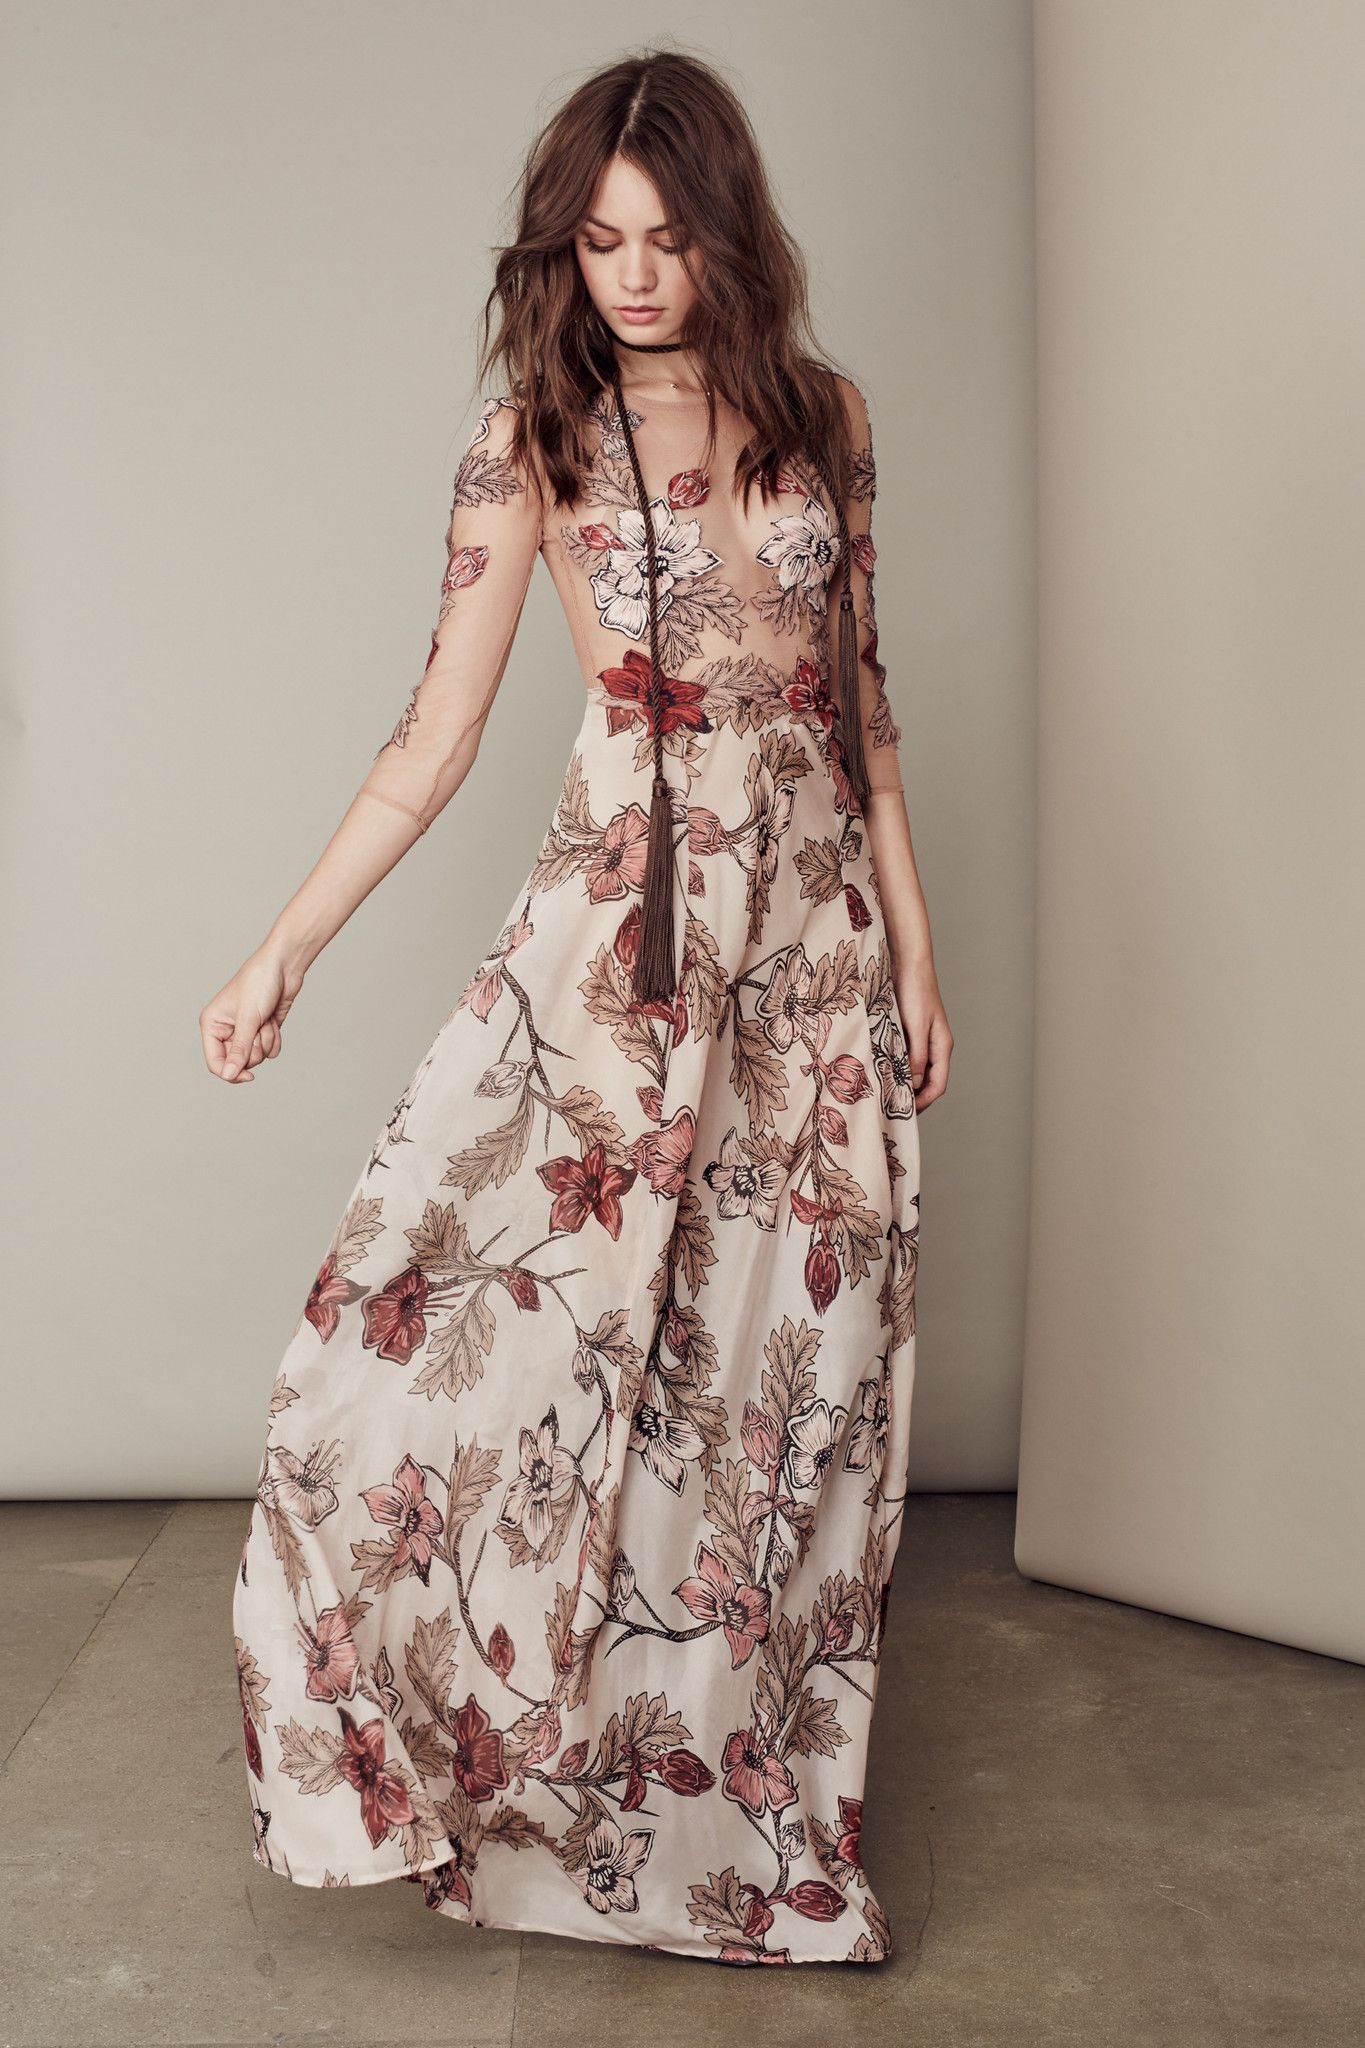 To acquire The list love bohemian winter pieces picture trends